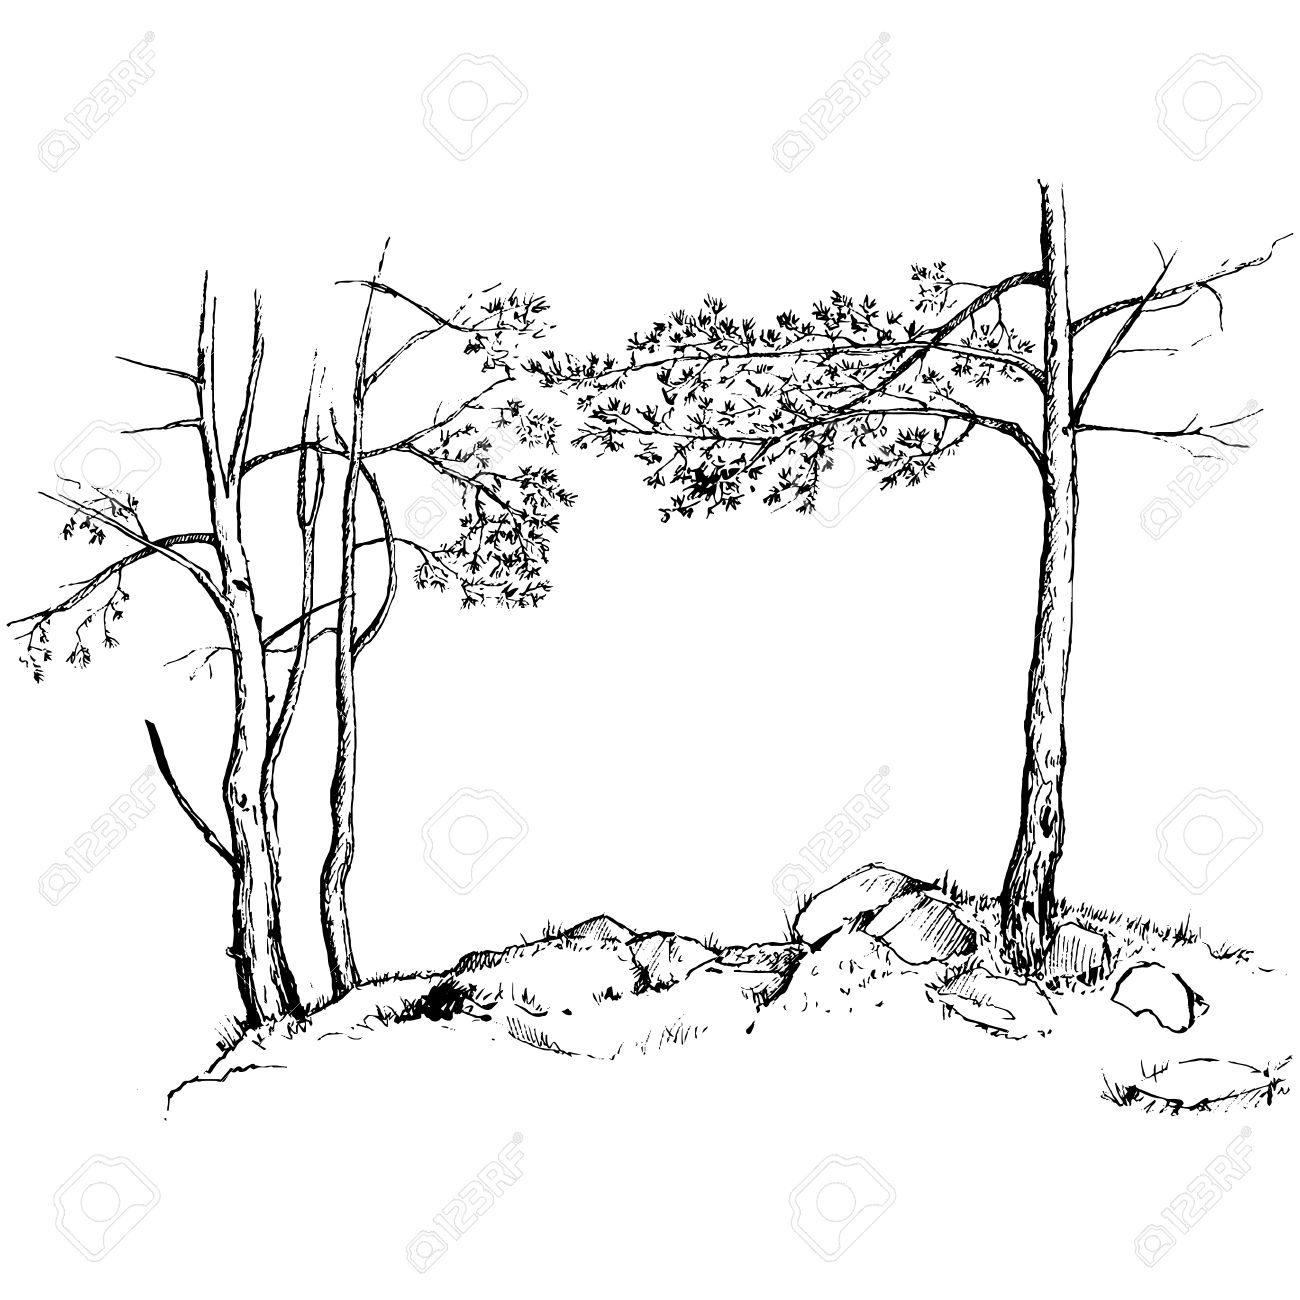 1300x1300 Pine Trees, Grass And Rocks Drawing By Ink, Sketch Of Wild Nature